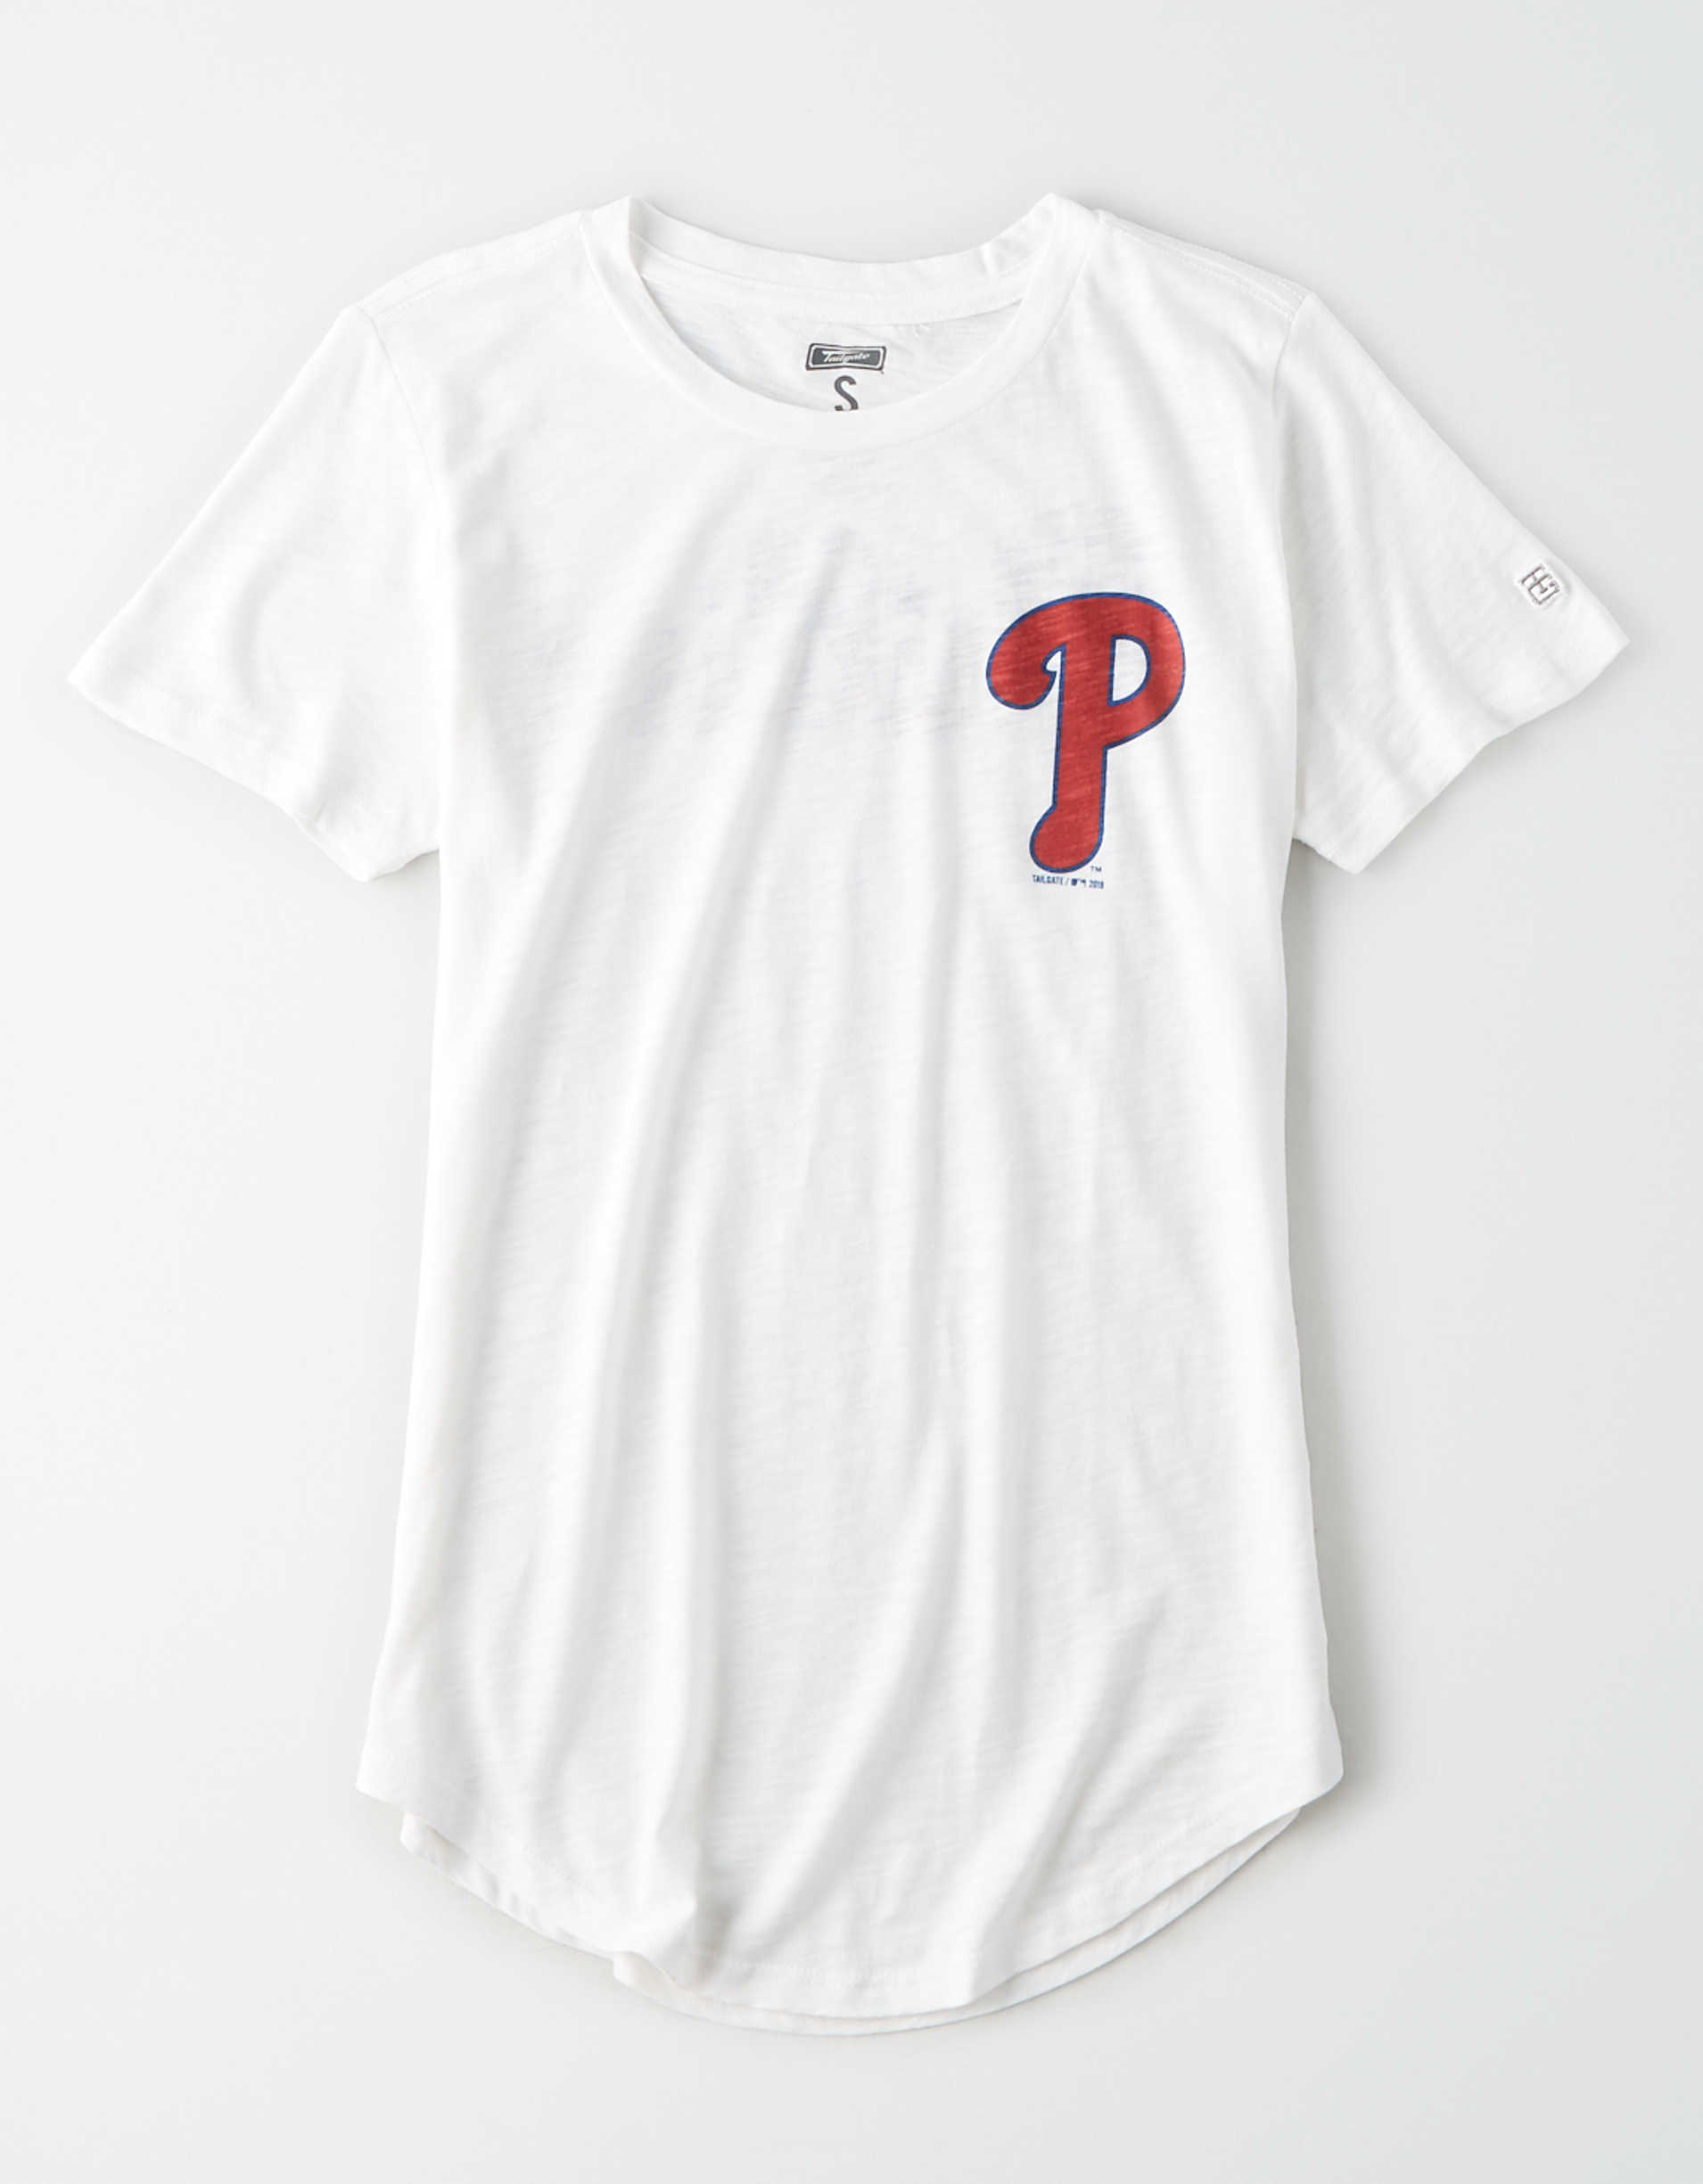 Tailgate Women's Philadelphia Phillies T-Shirt